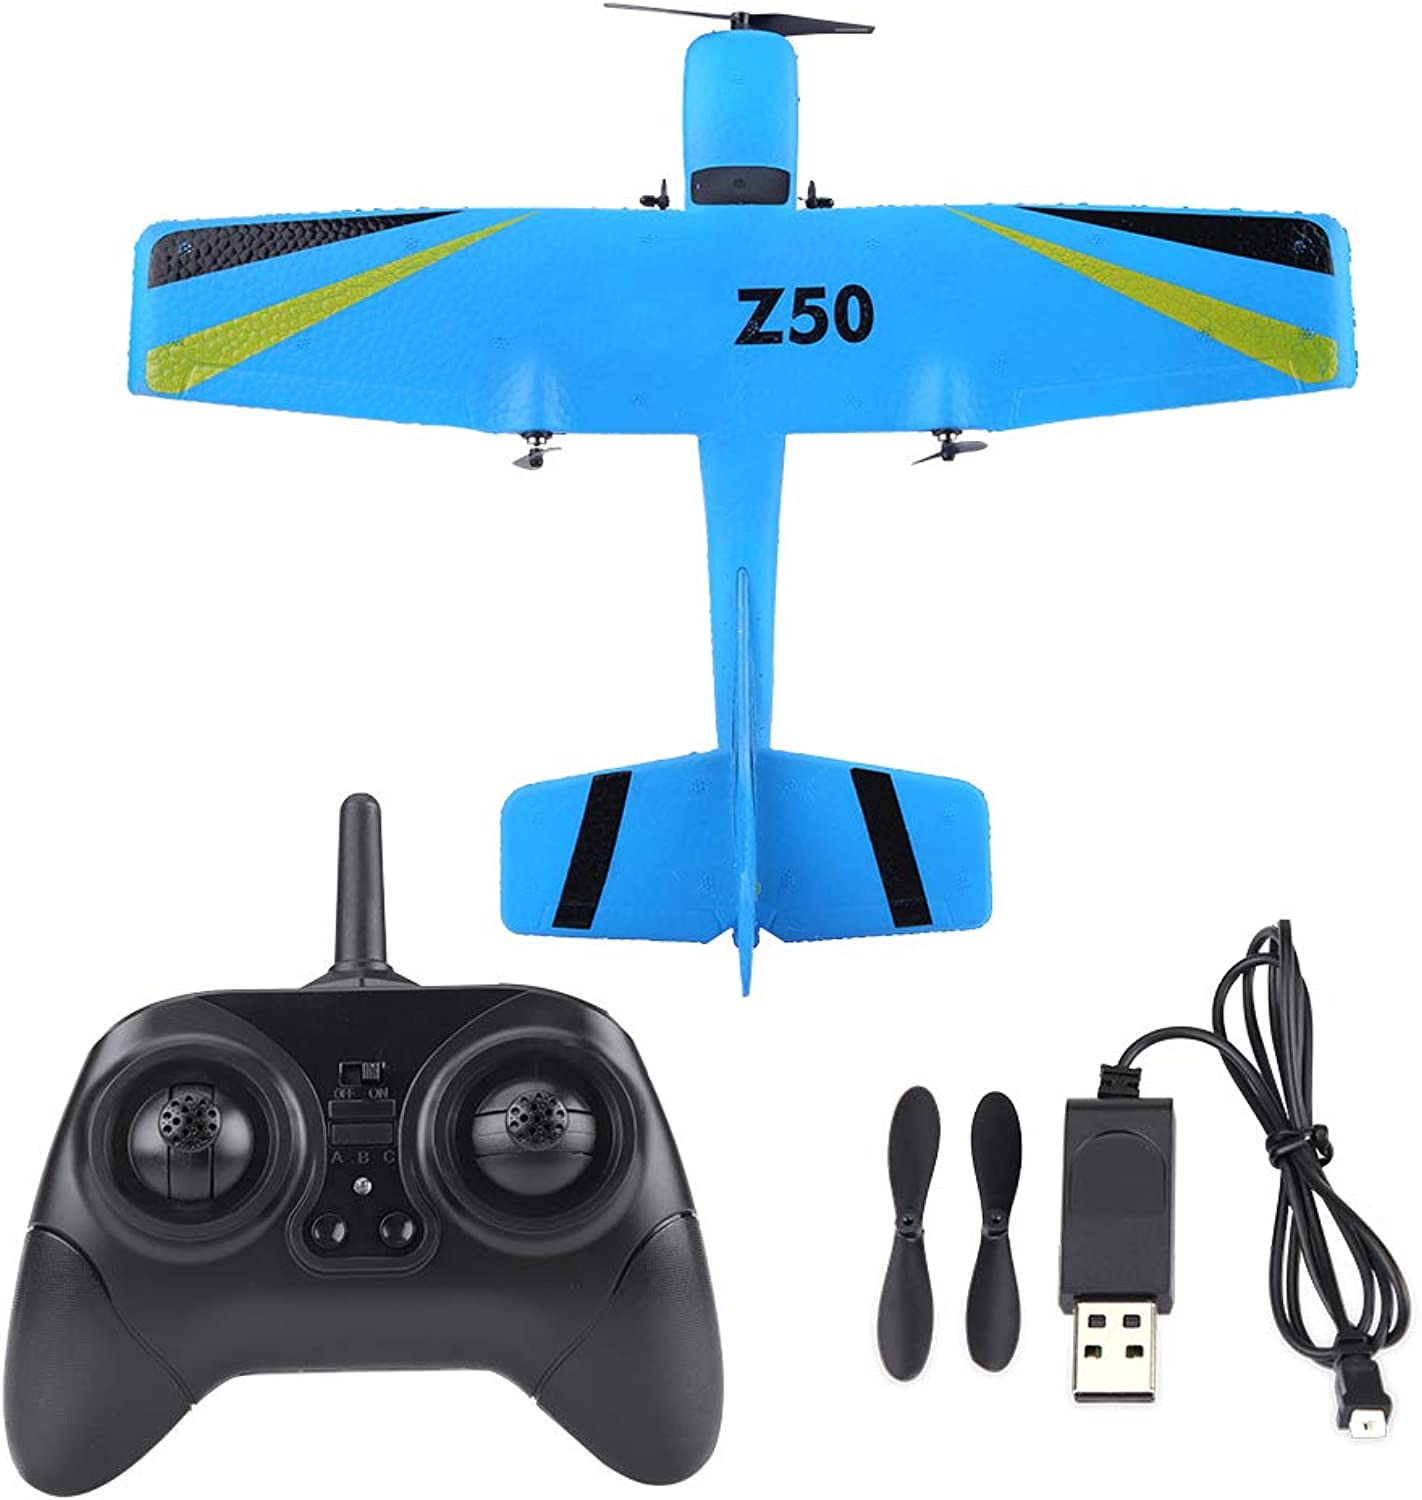 RC Airplane Toy, 2.4G ZC-Z50 Remote Control Plane Glider EPP Fixed Wing Remote Control Aircraft Model Toy(bluee)